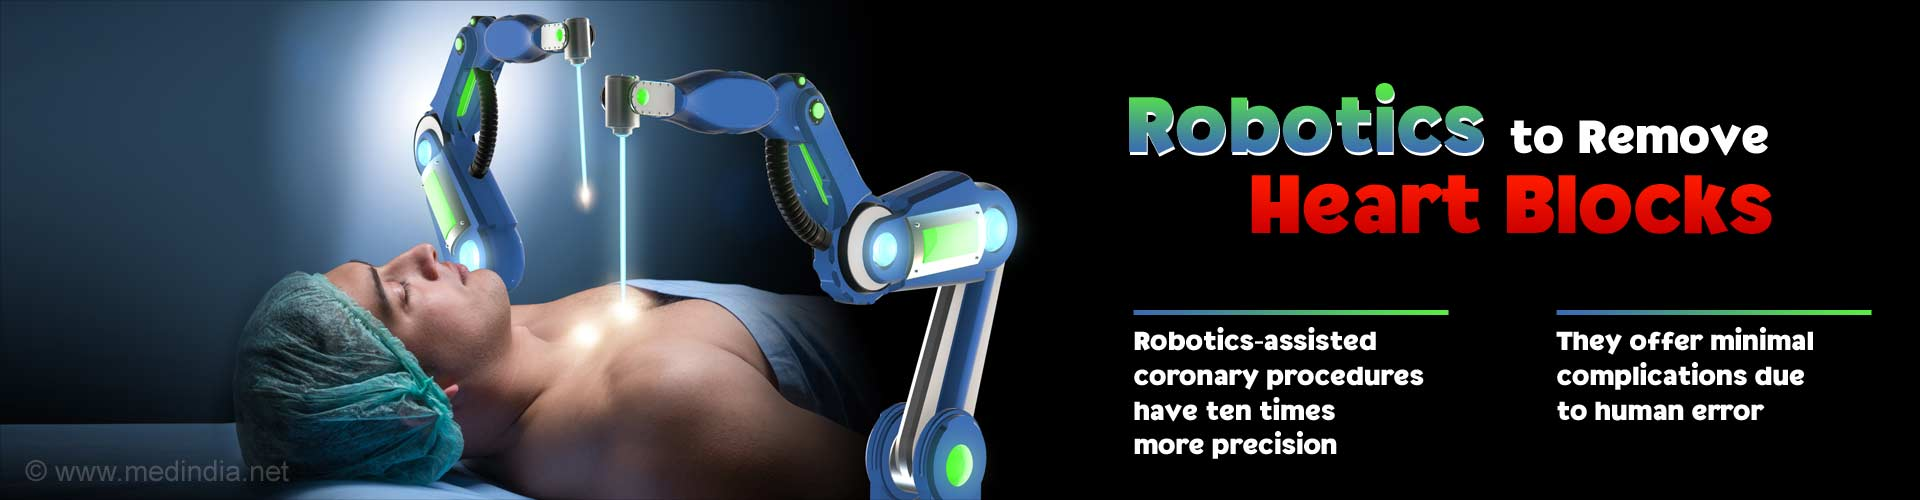 robotics to remove heart blocks